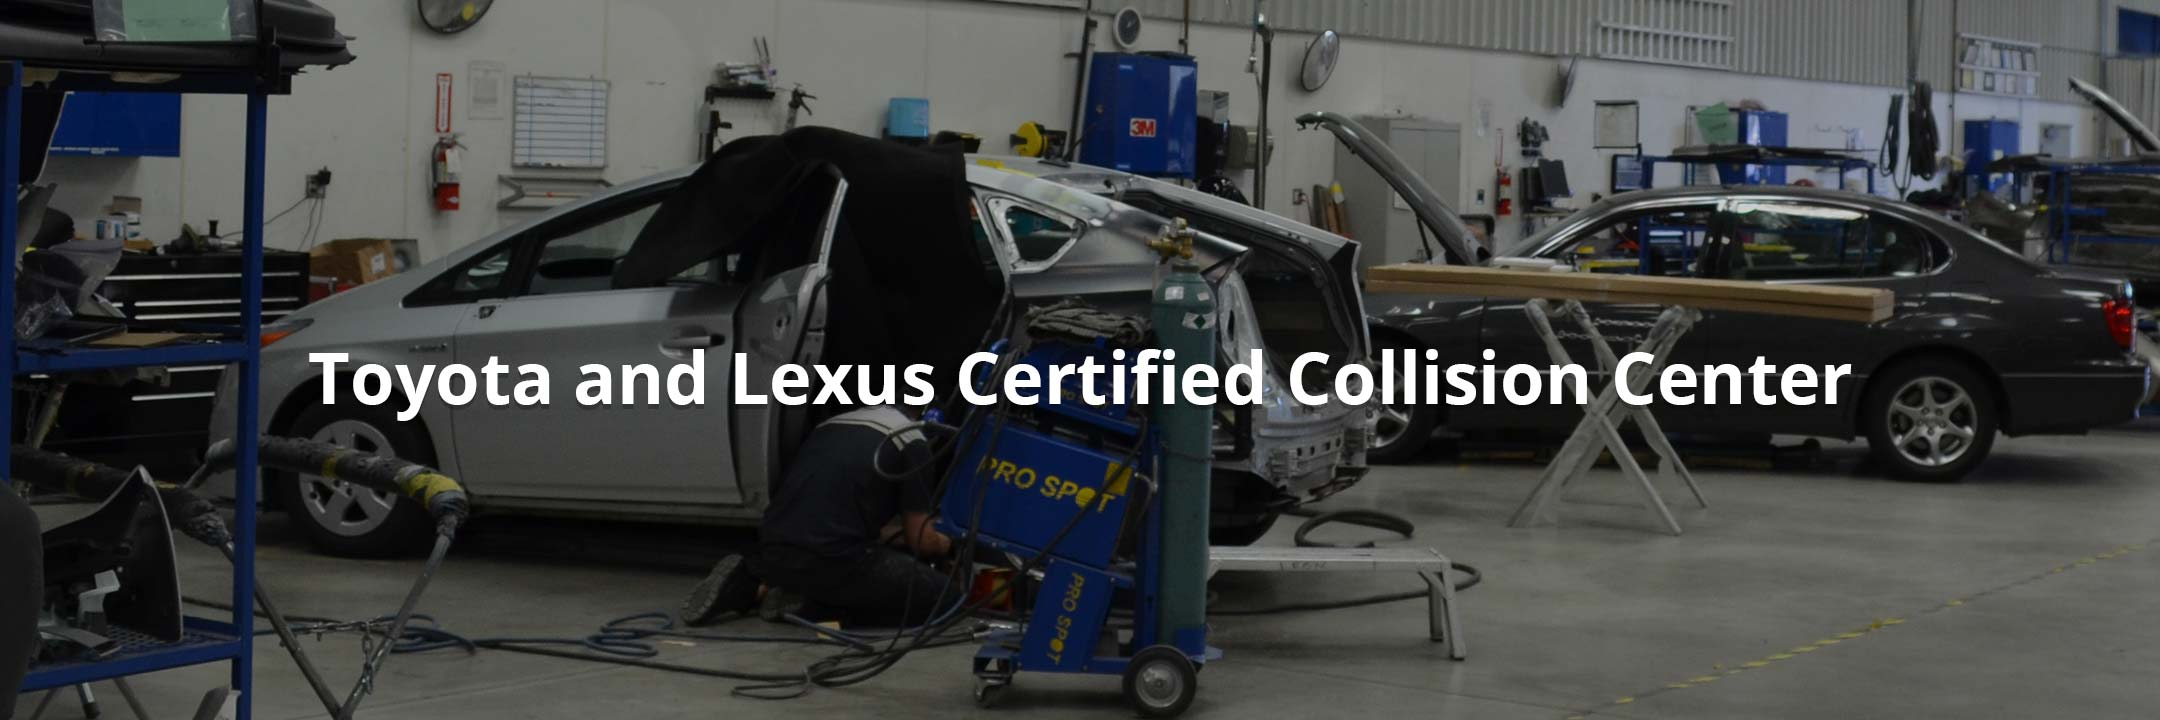 Toyota and Lexus Certified Collision Center